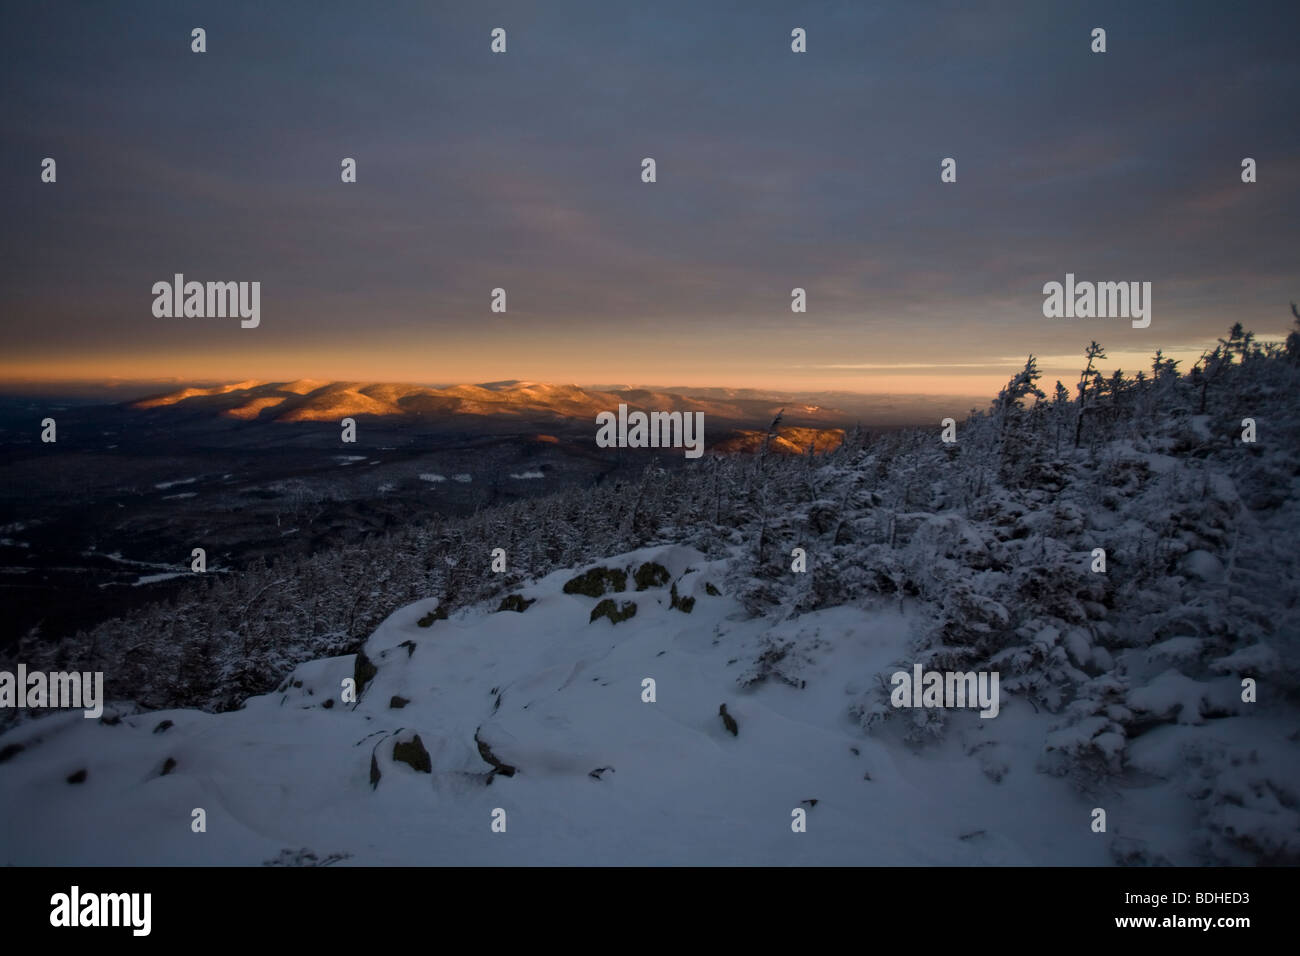 View of the North End of the Presidential Mountain Range in New Hampshire, at sunrise. - Stock Image